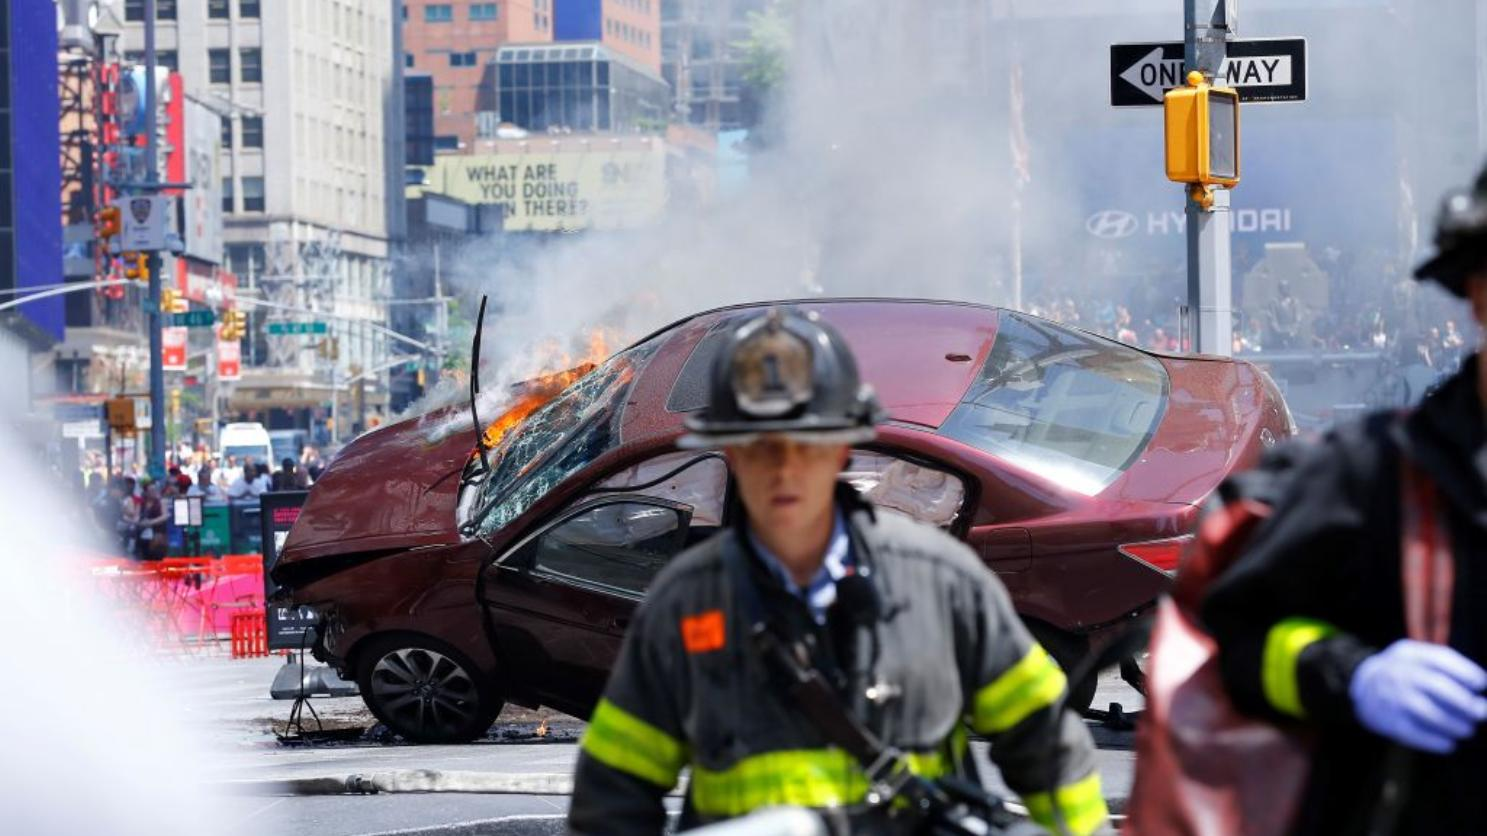 Everything we know about the horrific car crash in Times Square: https://t.co/8ICfWdOaPc https://t.co/lfQk24Hk84